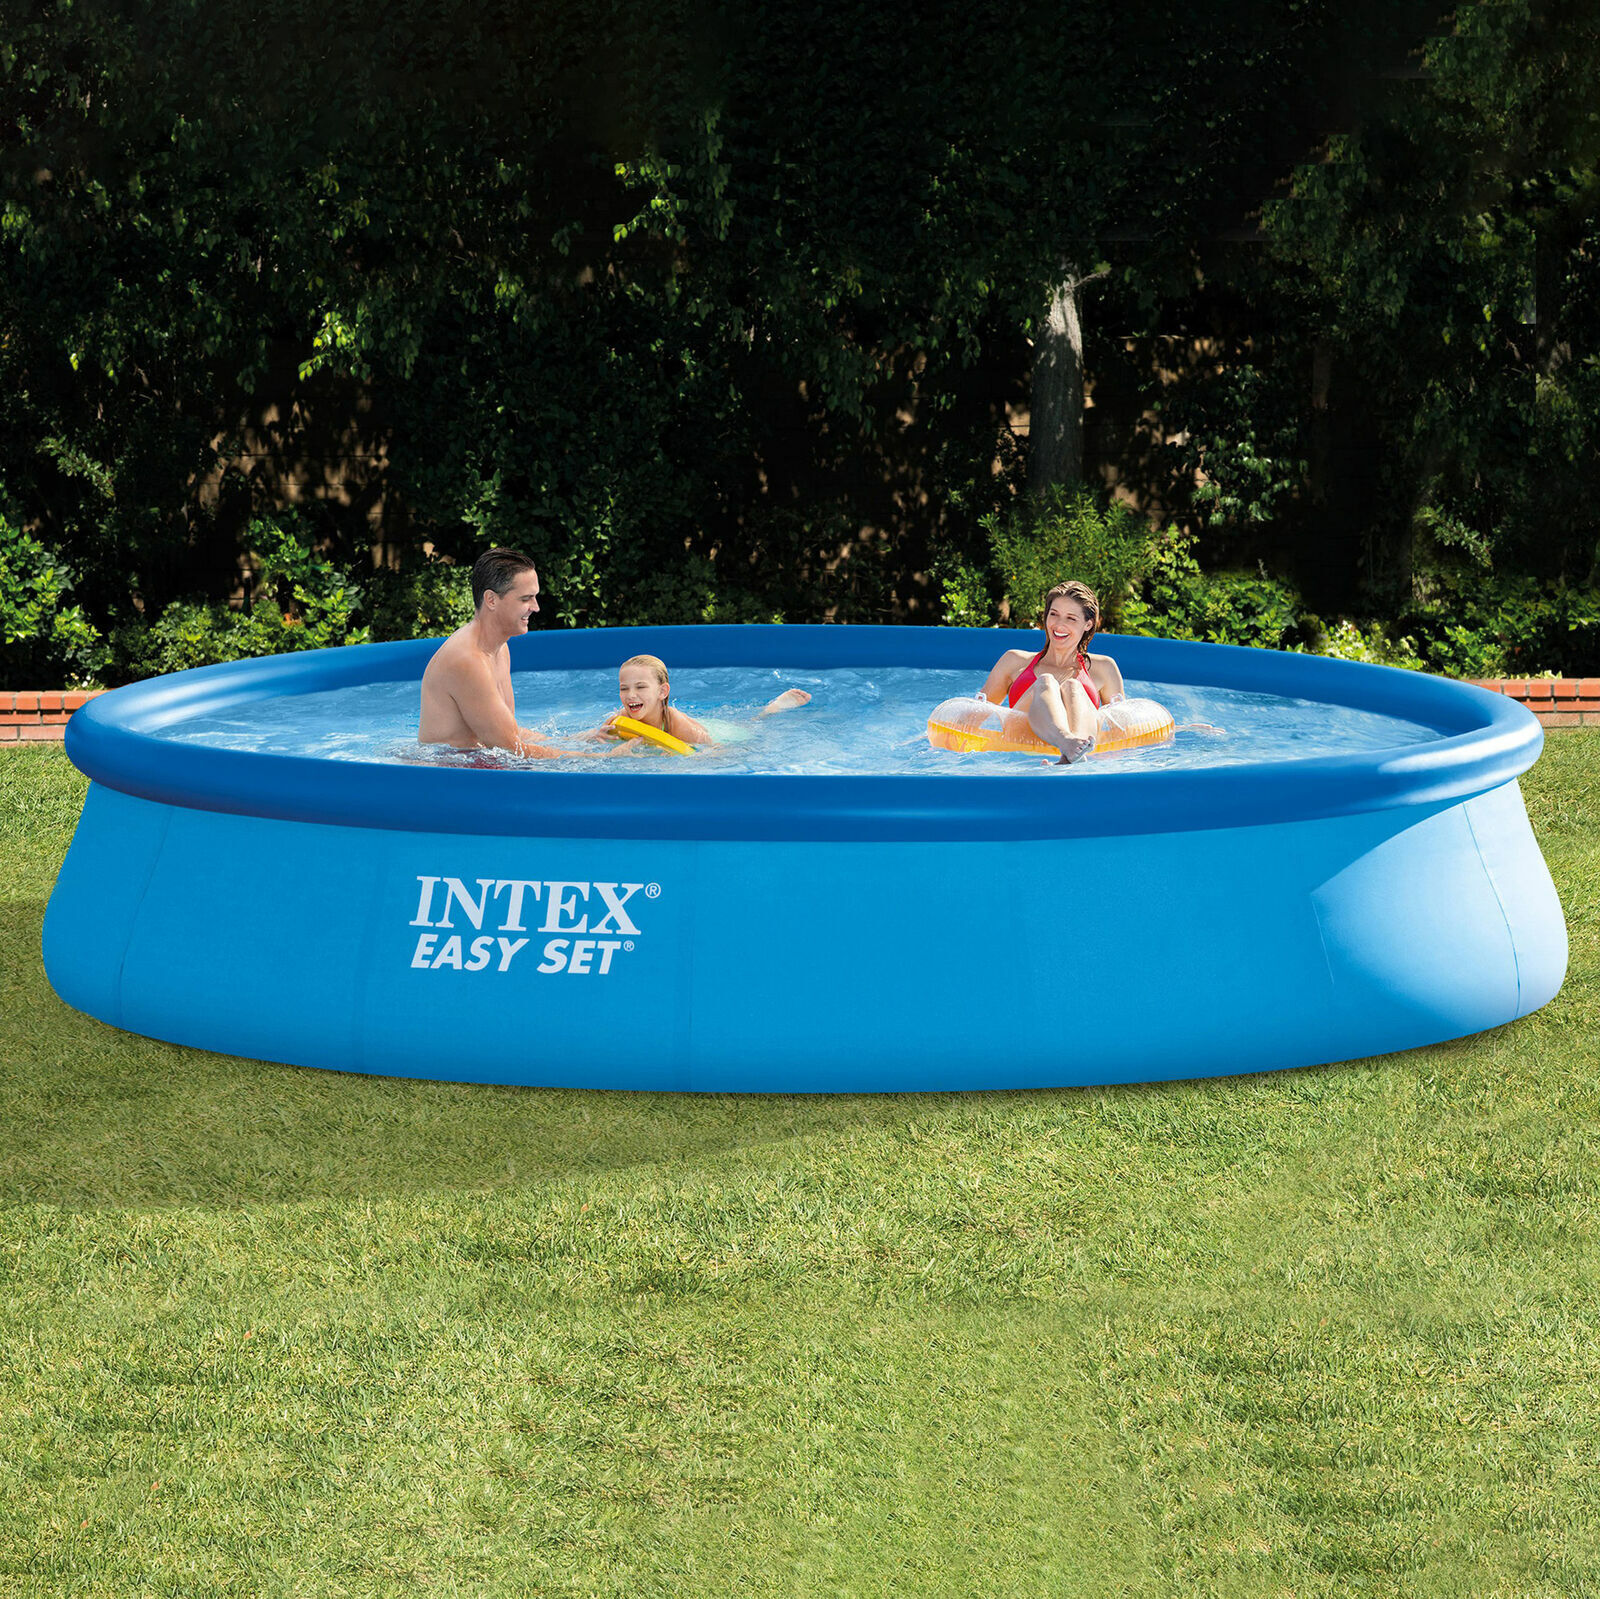 "Intex 15' x 33"" Easy Set Above Ground Pool & 530 GPH Filter"